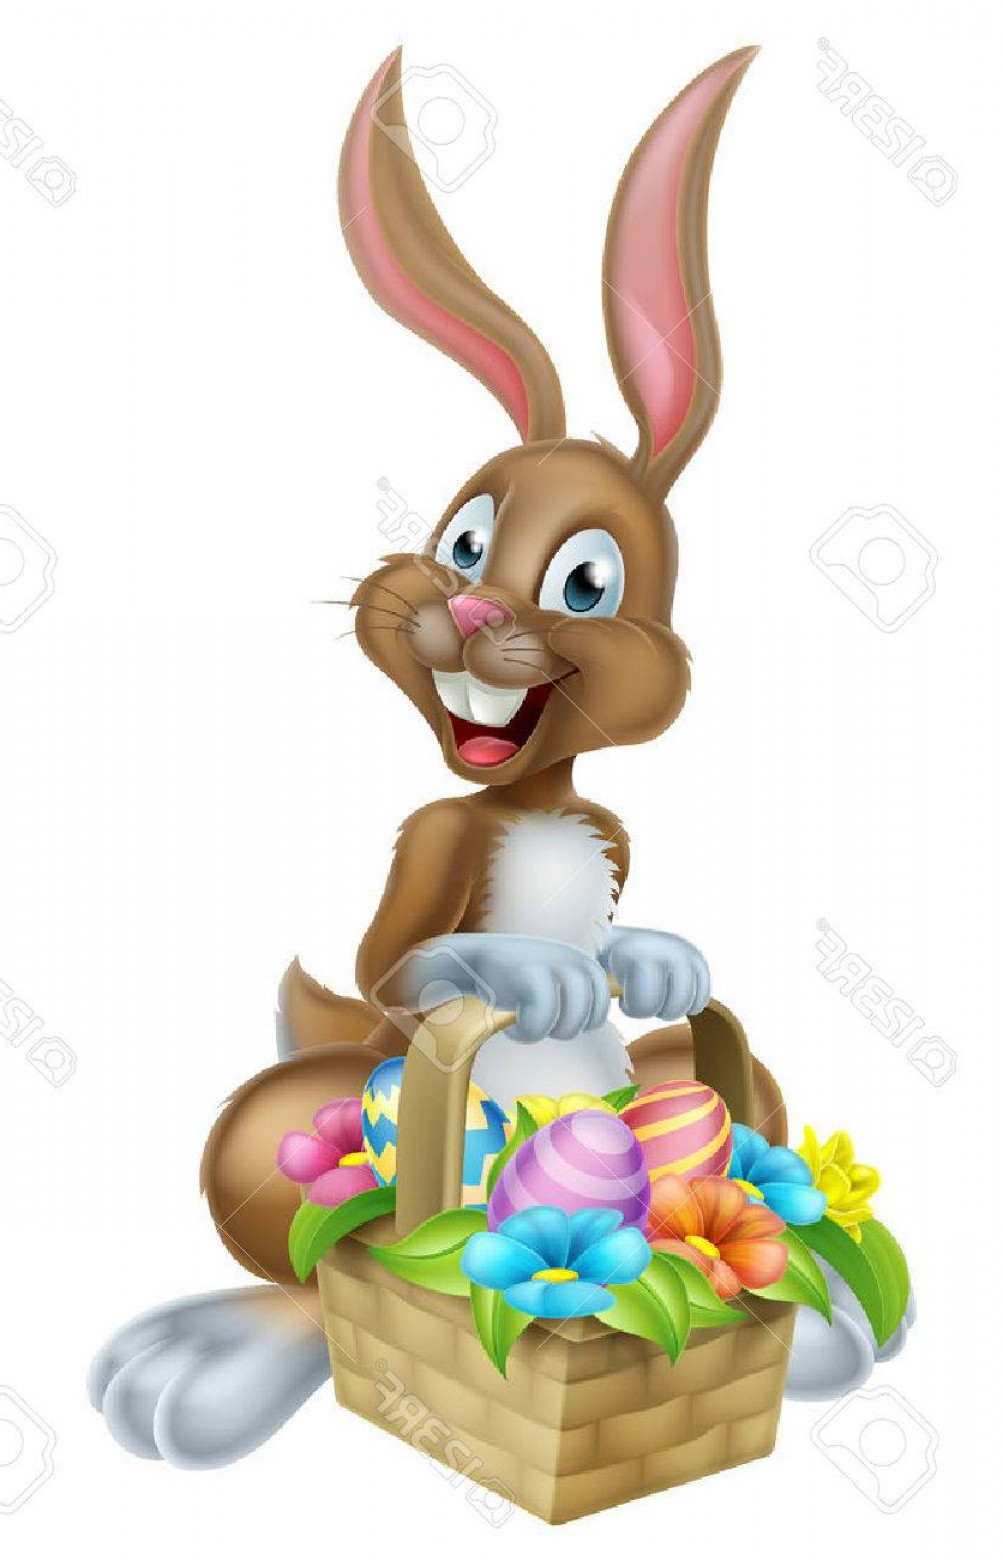 Chocolate Bunny Vector: Photostock Vector Cartoon Easter Bunny Rabbit Holding An Easter Eggs Basket Could Be On A Chocolate Easter Egg Hunt